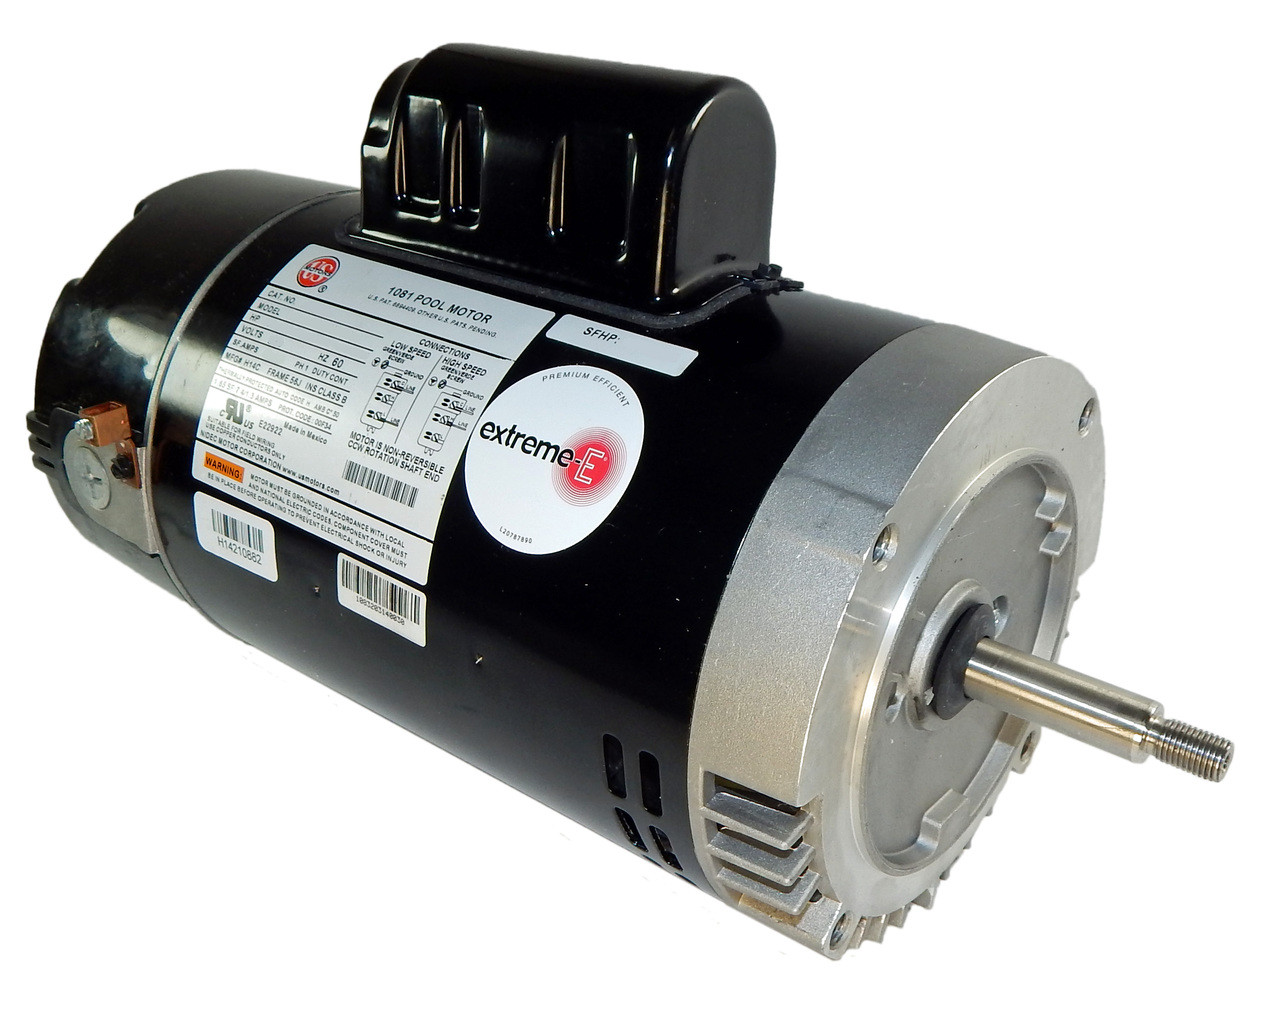 medium resolution of 1 5 hp 2 speed 56j frame 230v 2 speed swimming pool motor us electric motor asb2977